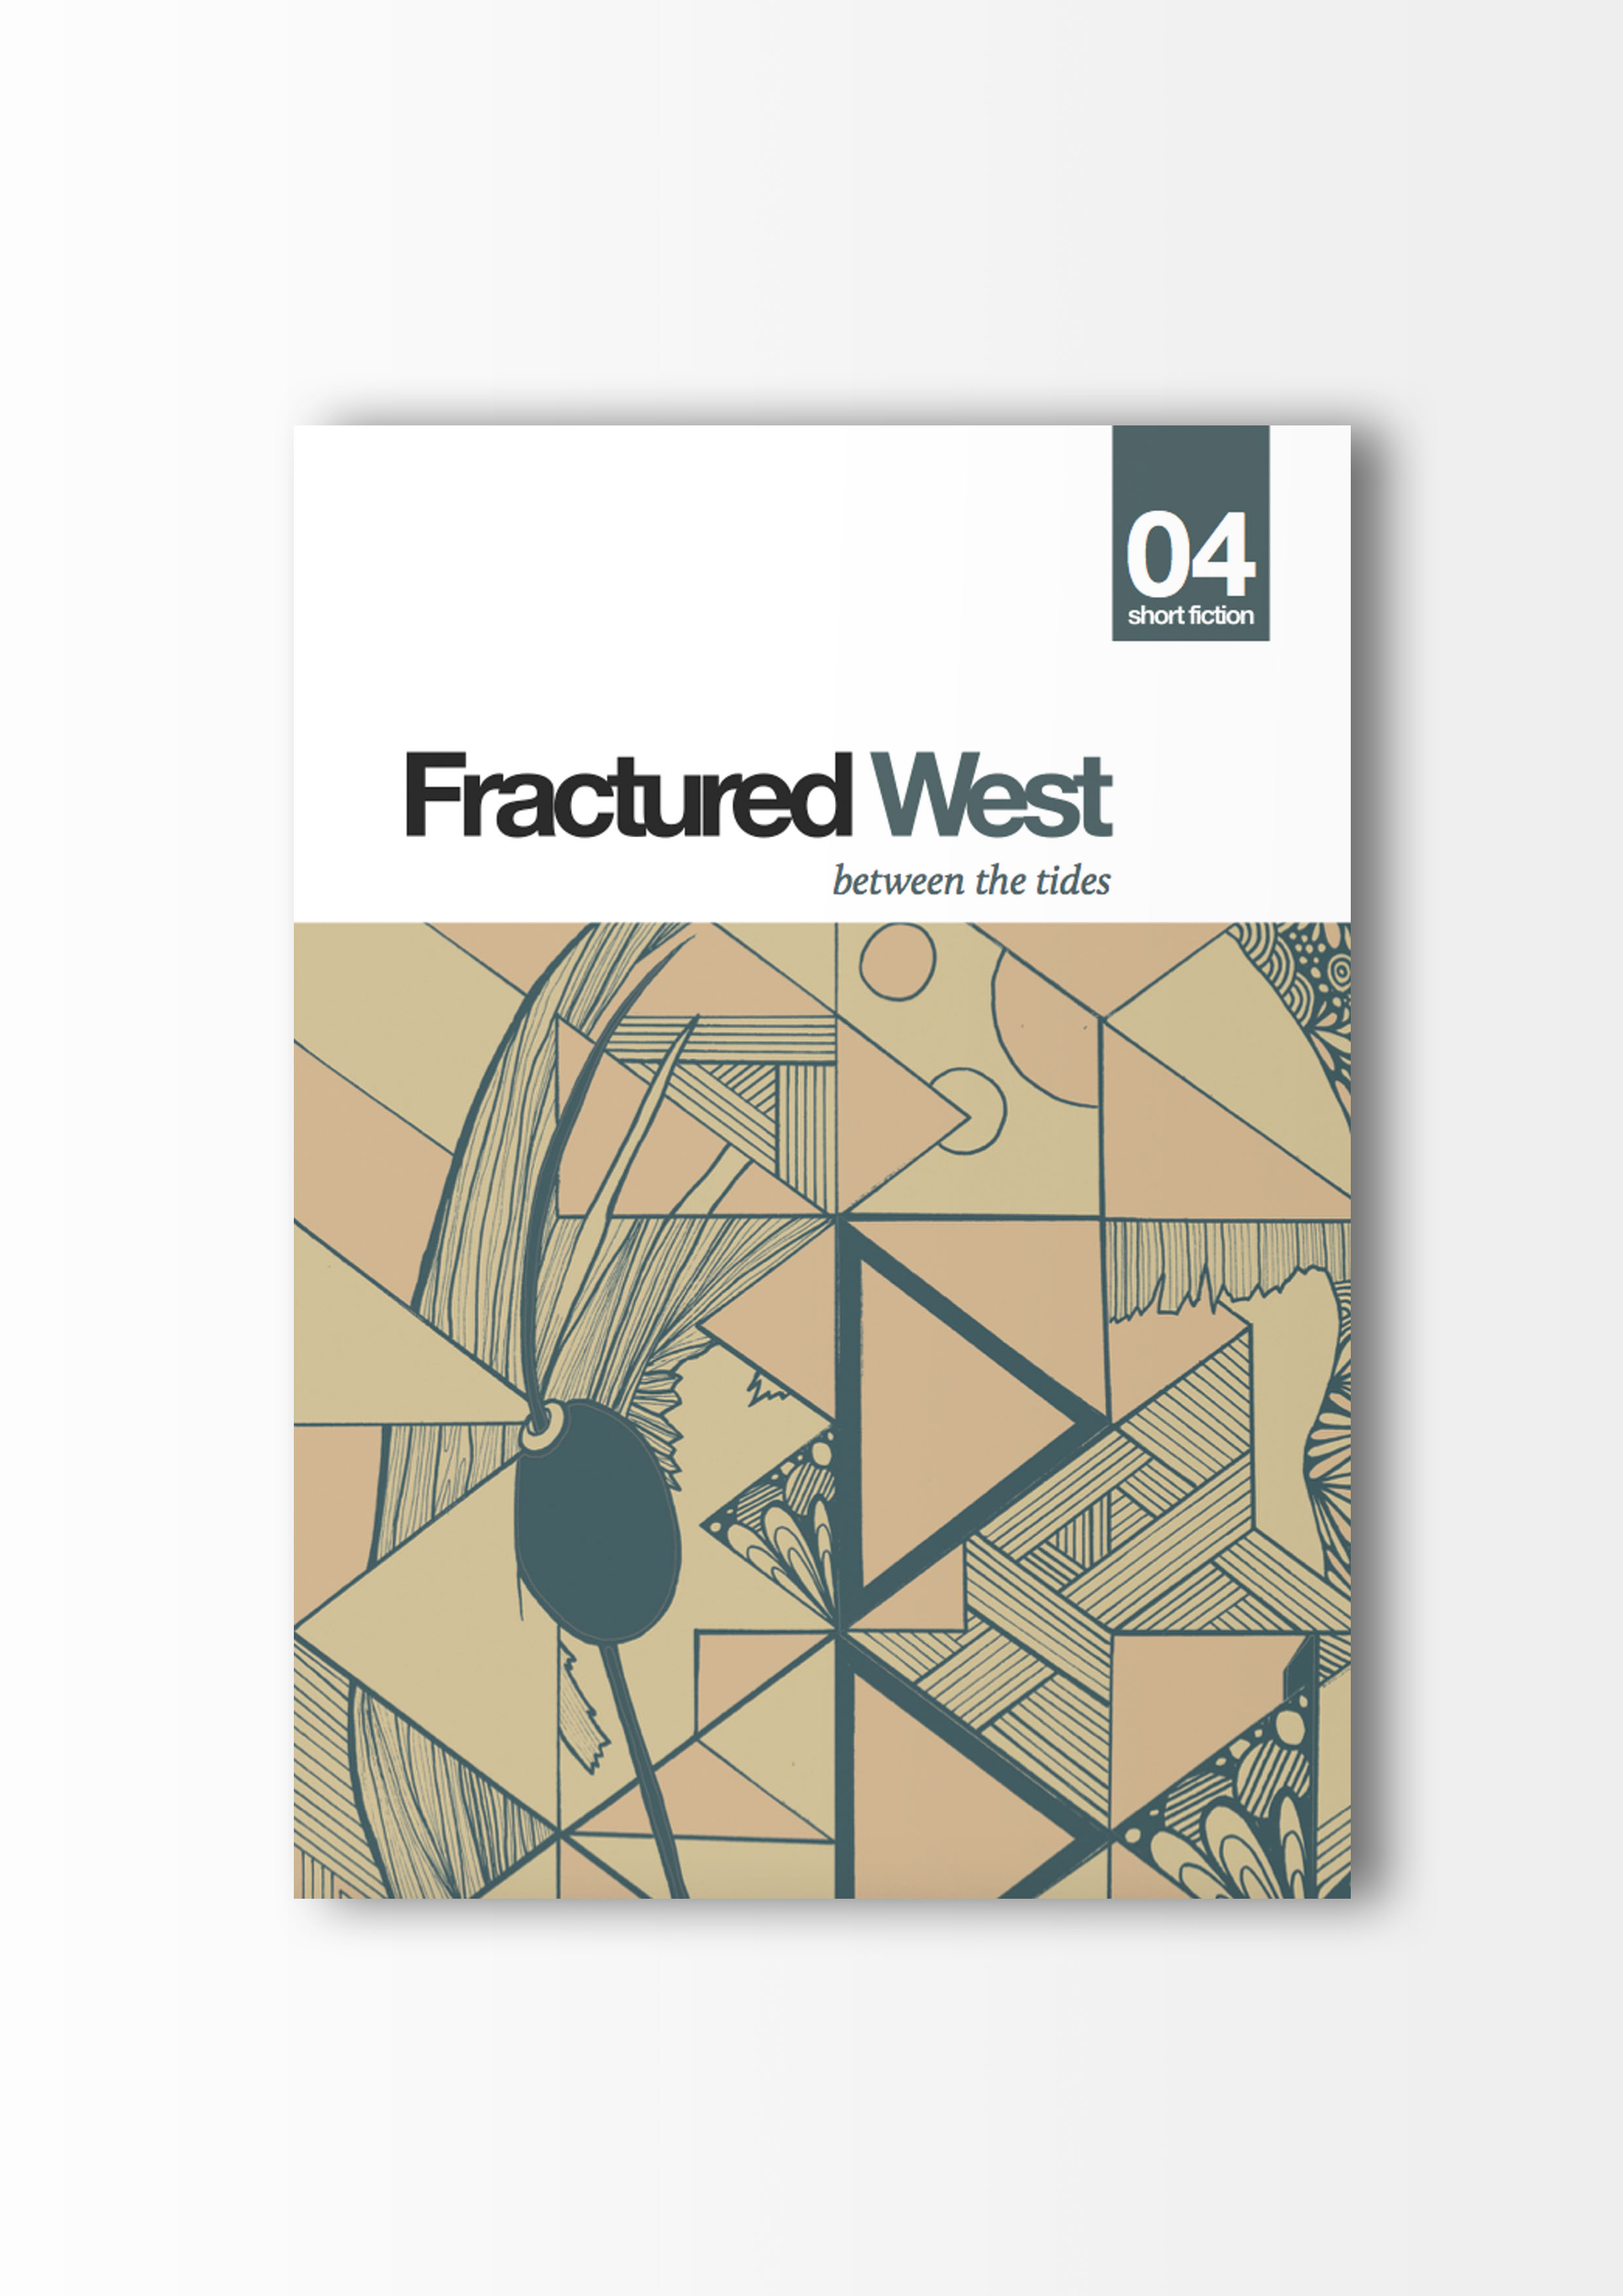 fractured west poetry magazine cover illustration geometric